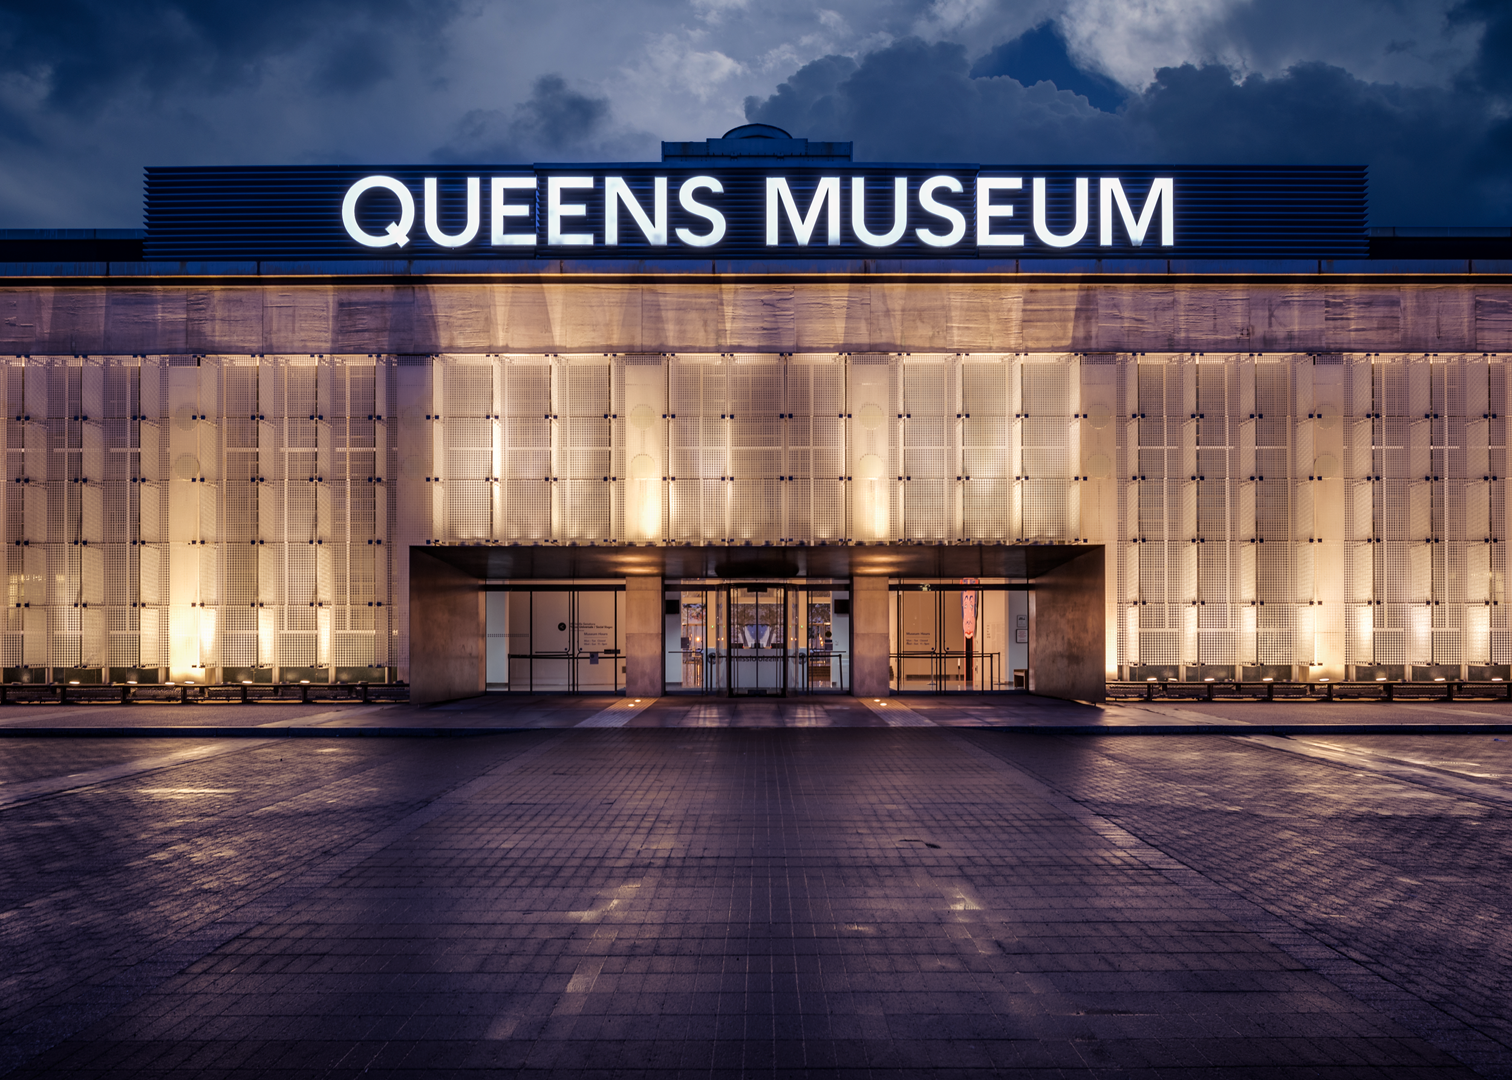 The Queens Museum located in Flushing Meadows-Corona Park